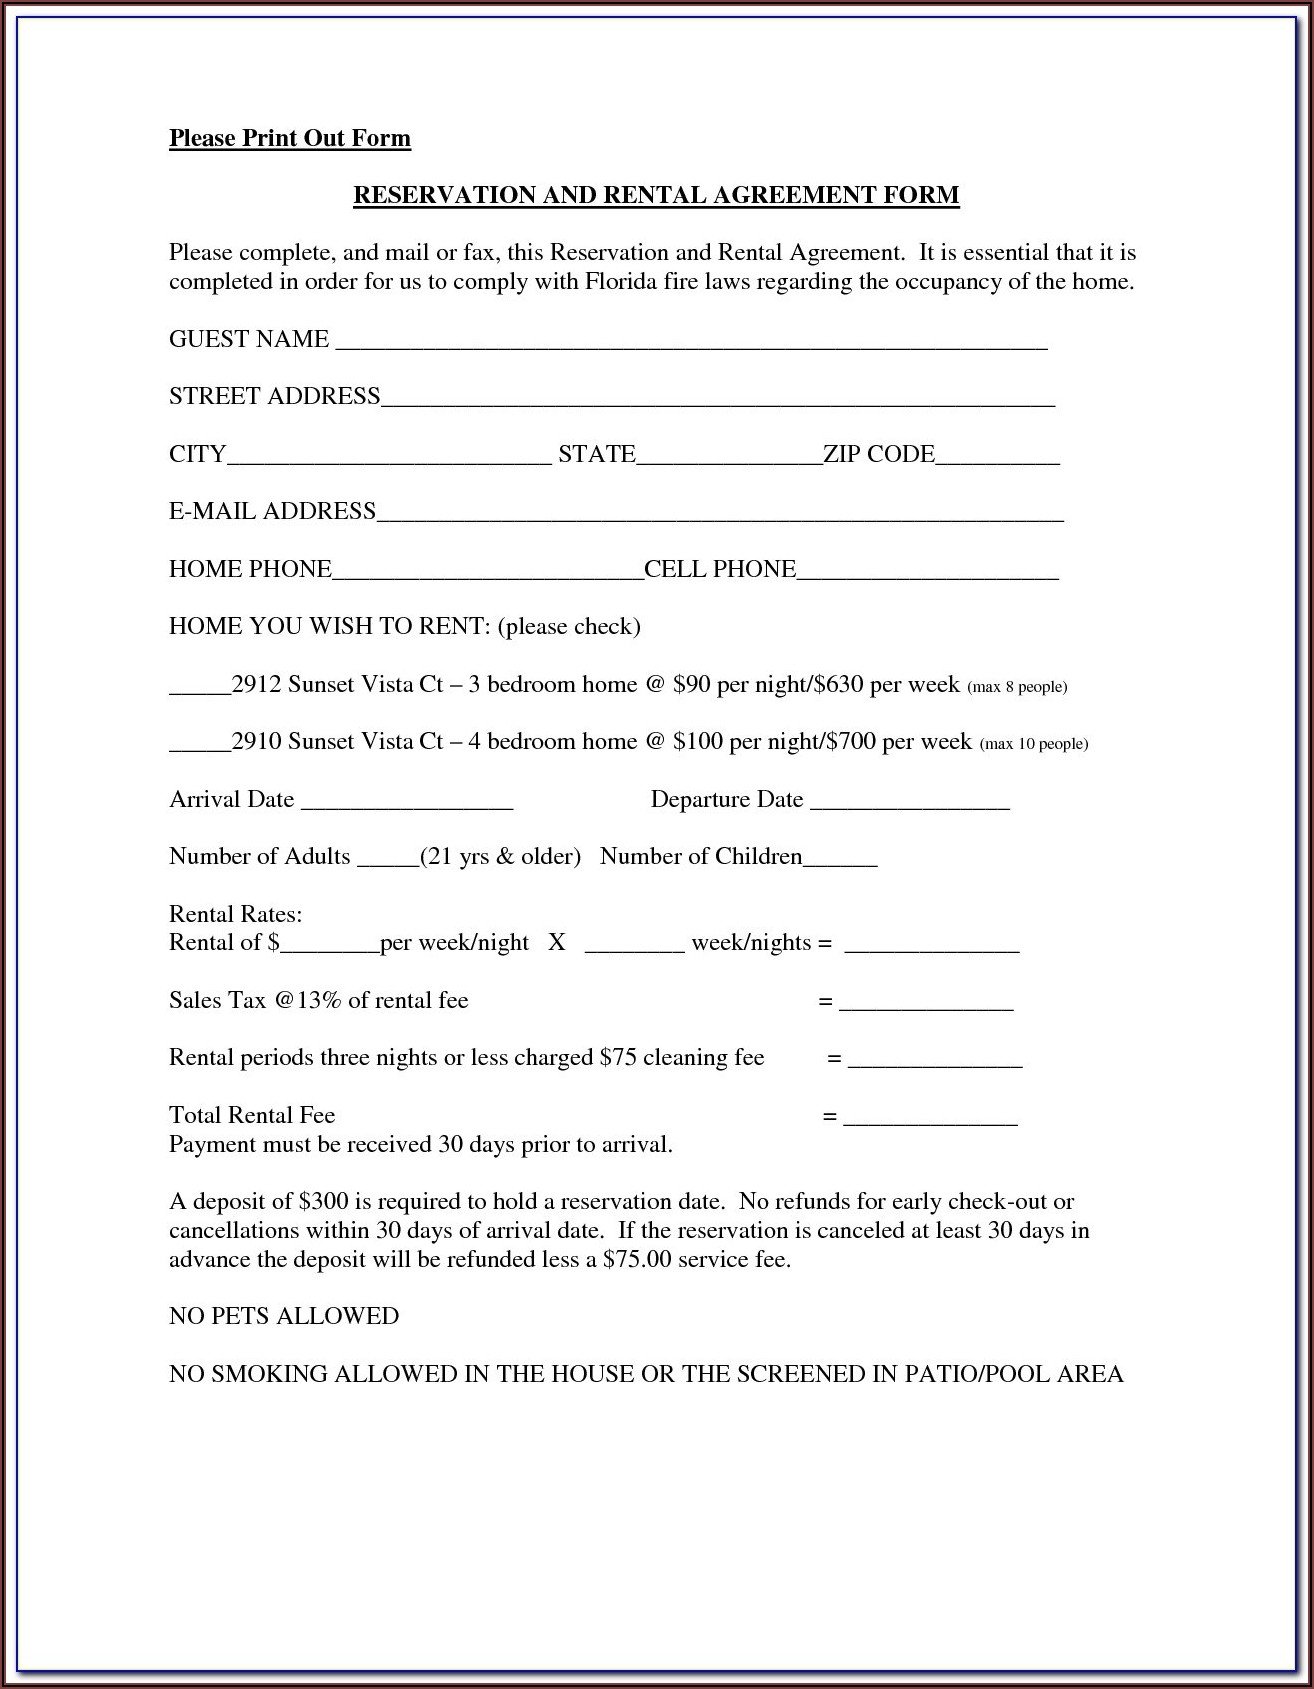 T186 Blumberg Lease Form